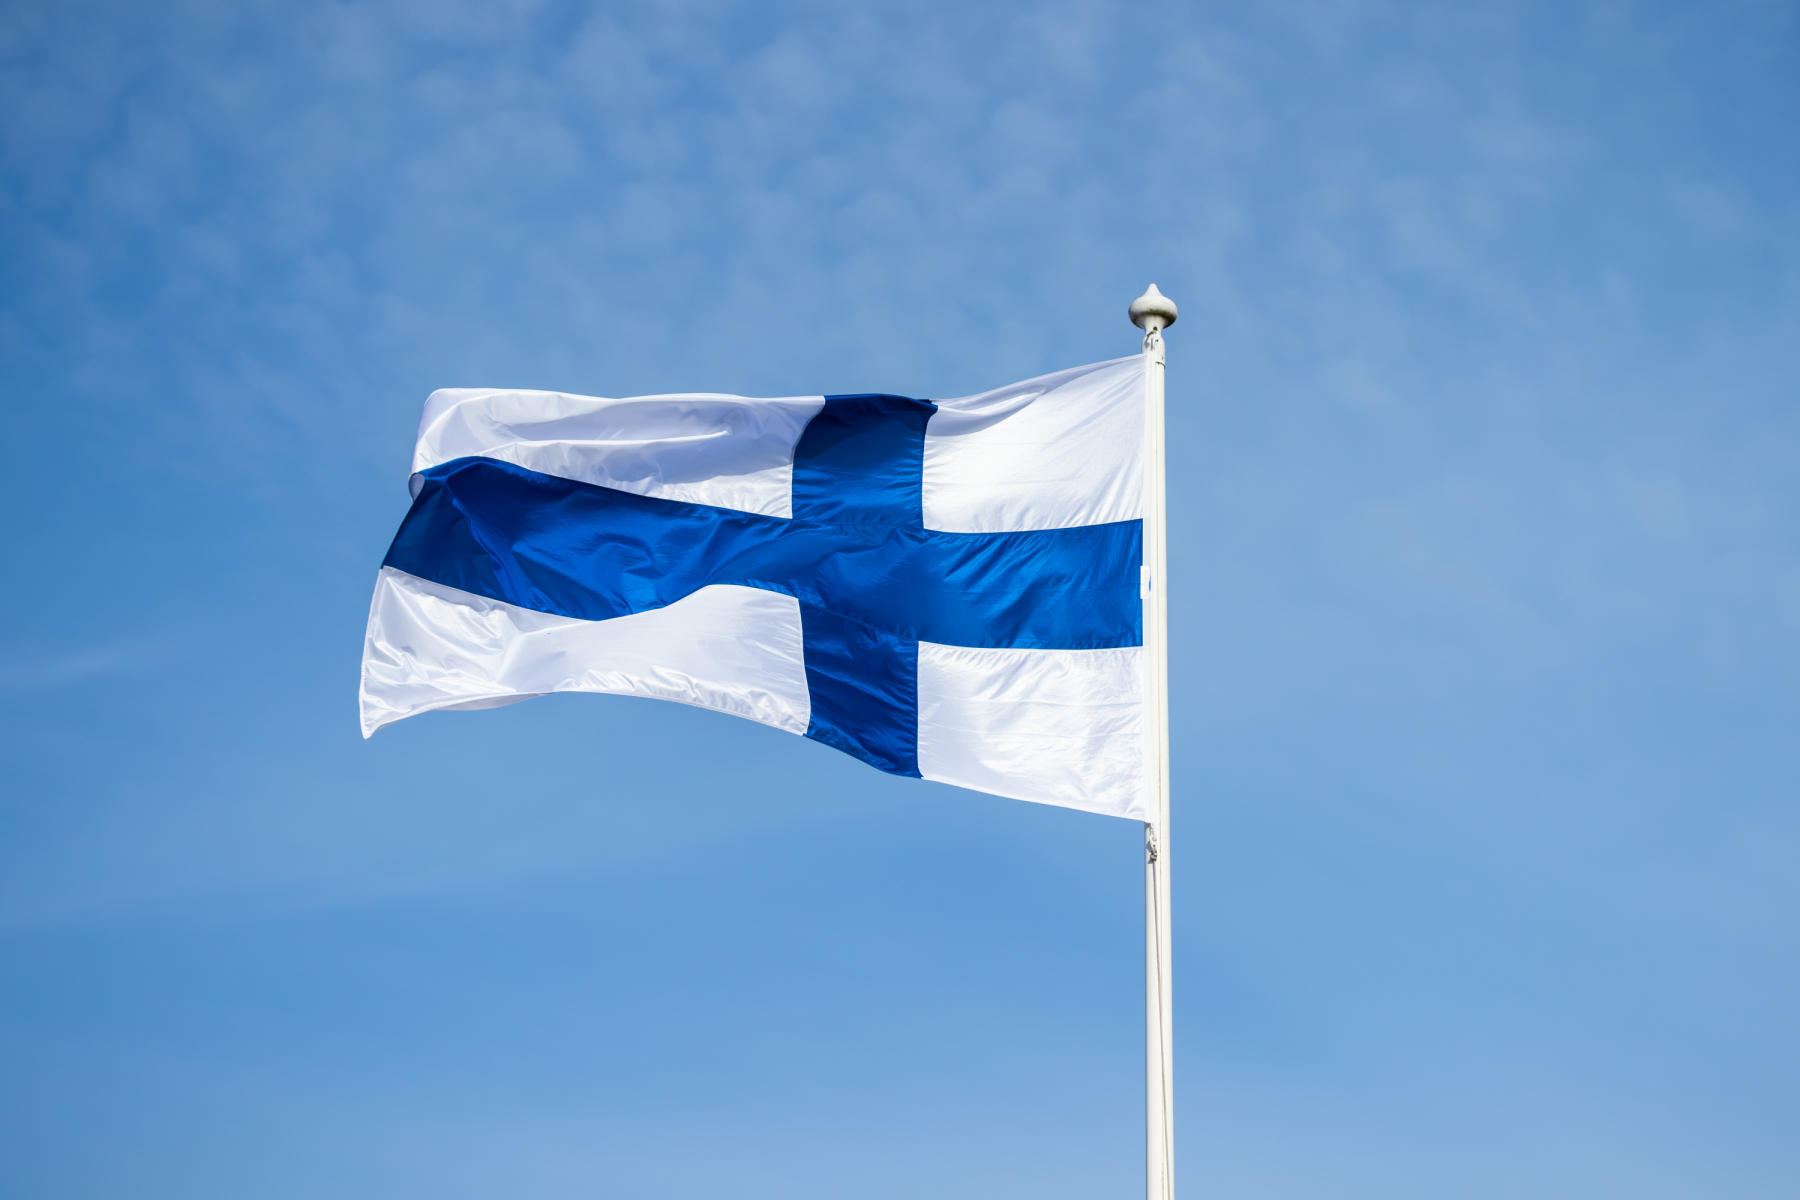 Finska flaggan vajande i vinden- finnish national flag on the wind against the blue sky